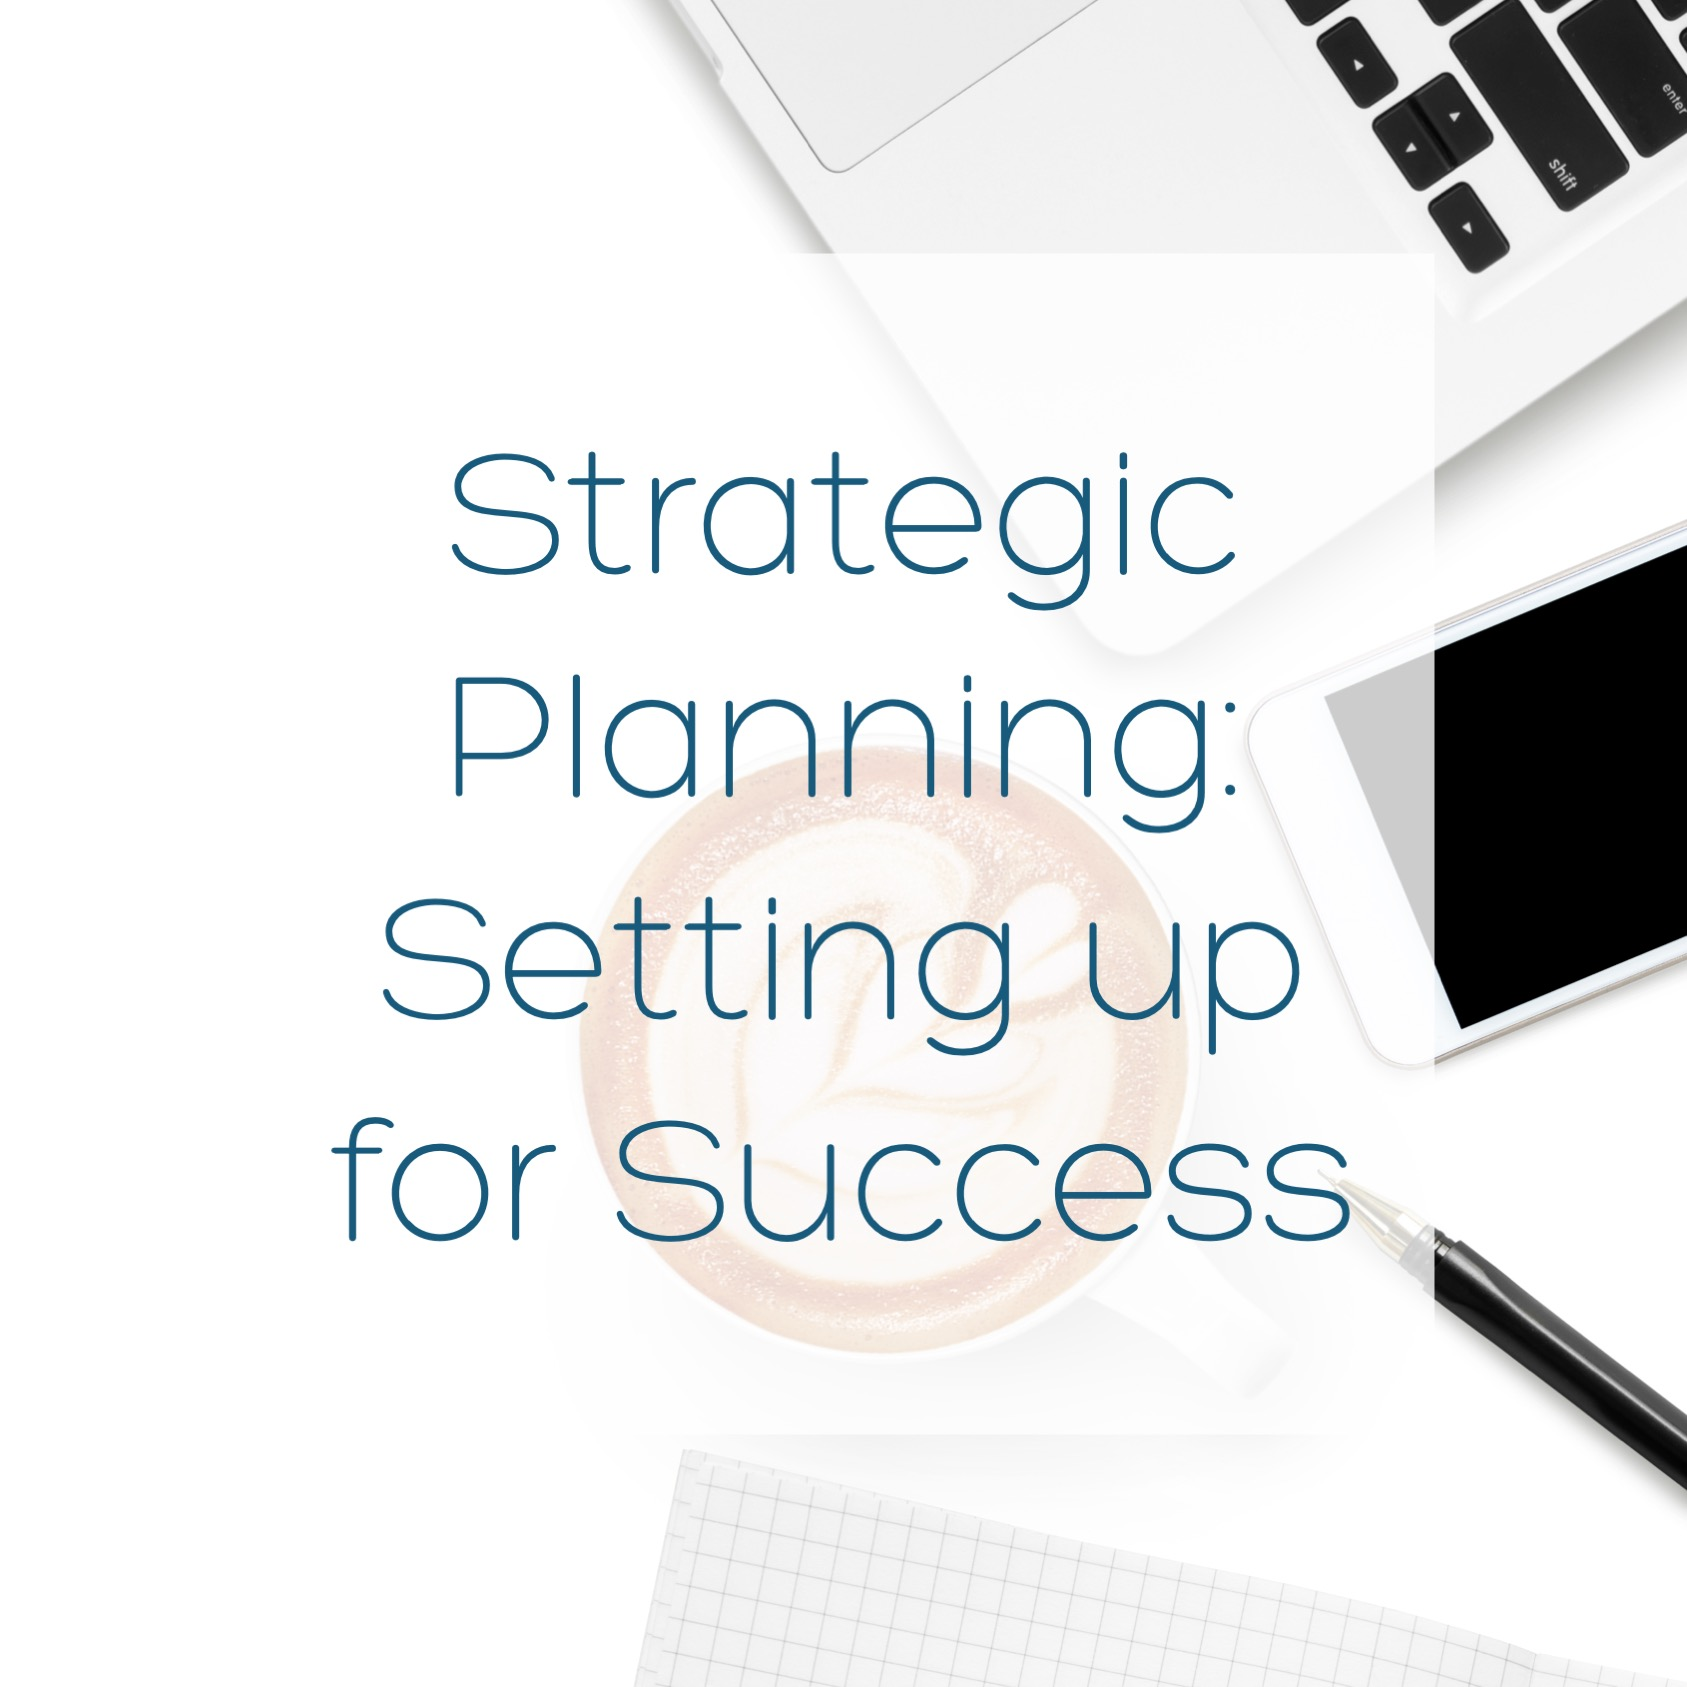 Strategic Planning: Setting Up for Success